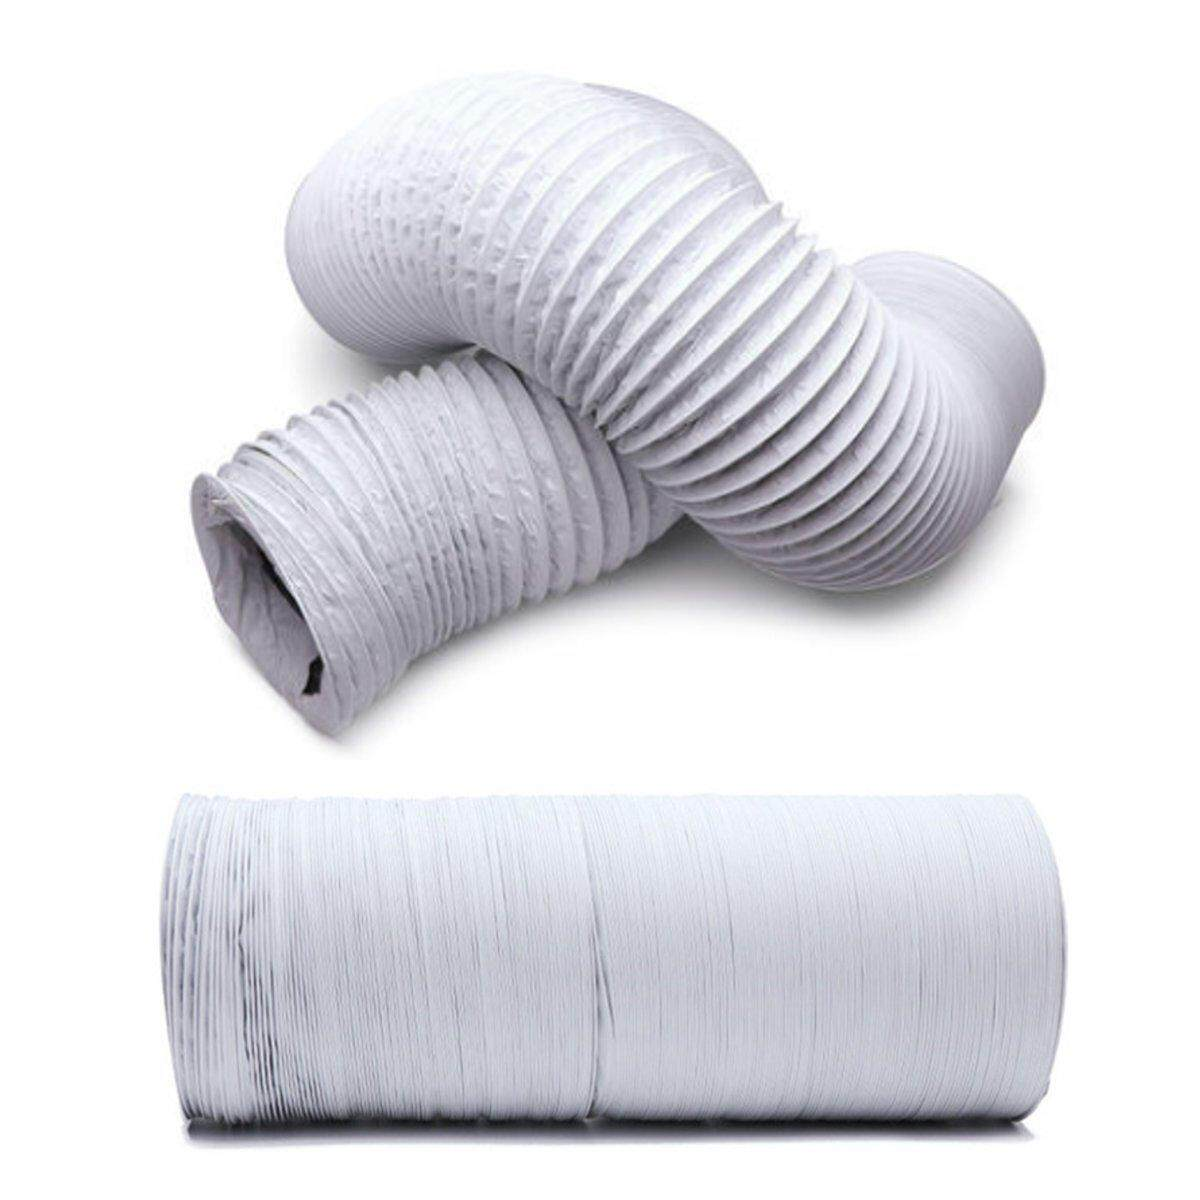 7m Flexible Air Conditioner Spare Parts Exhaust Pipe Vent Hose Outlet 225mm By Moonbeam.